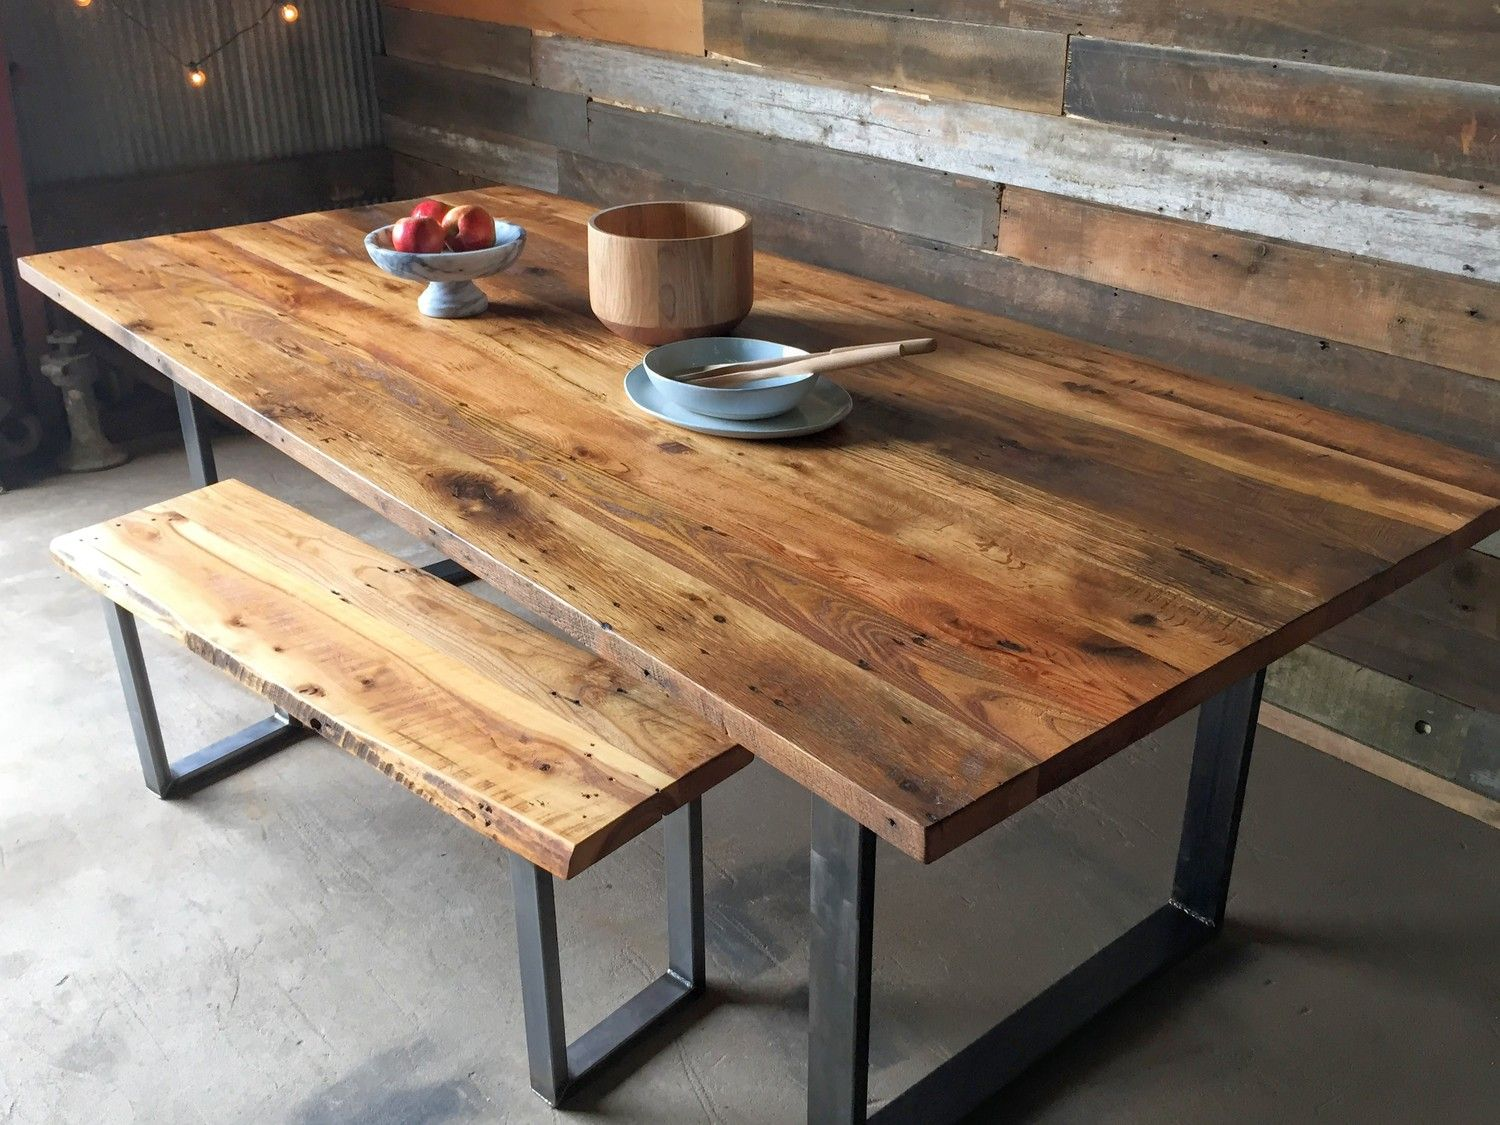 Reclaimed Wood Dining Table | Decor | Pinterest | Reclaimed wood ...